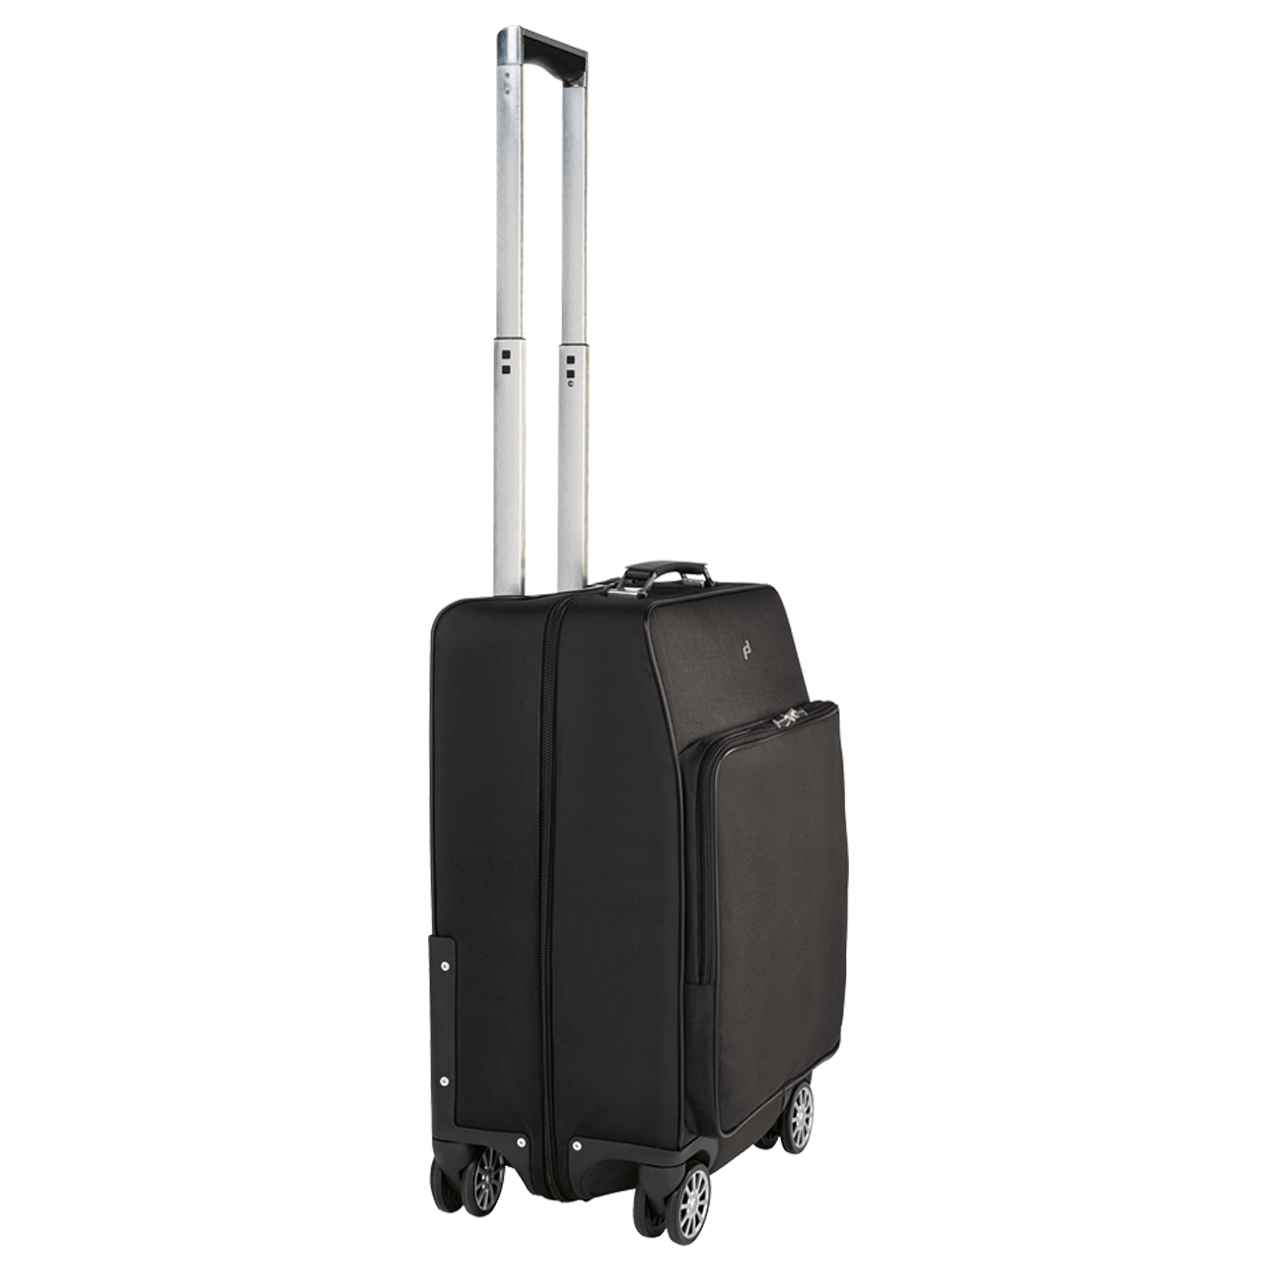 ROADSTER SOFTCASE SERIES TROLLEY 670 - фото 1